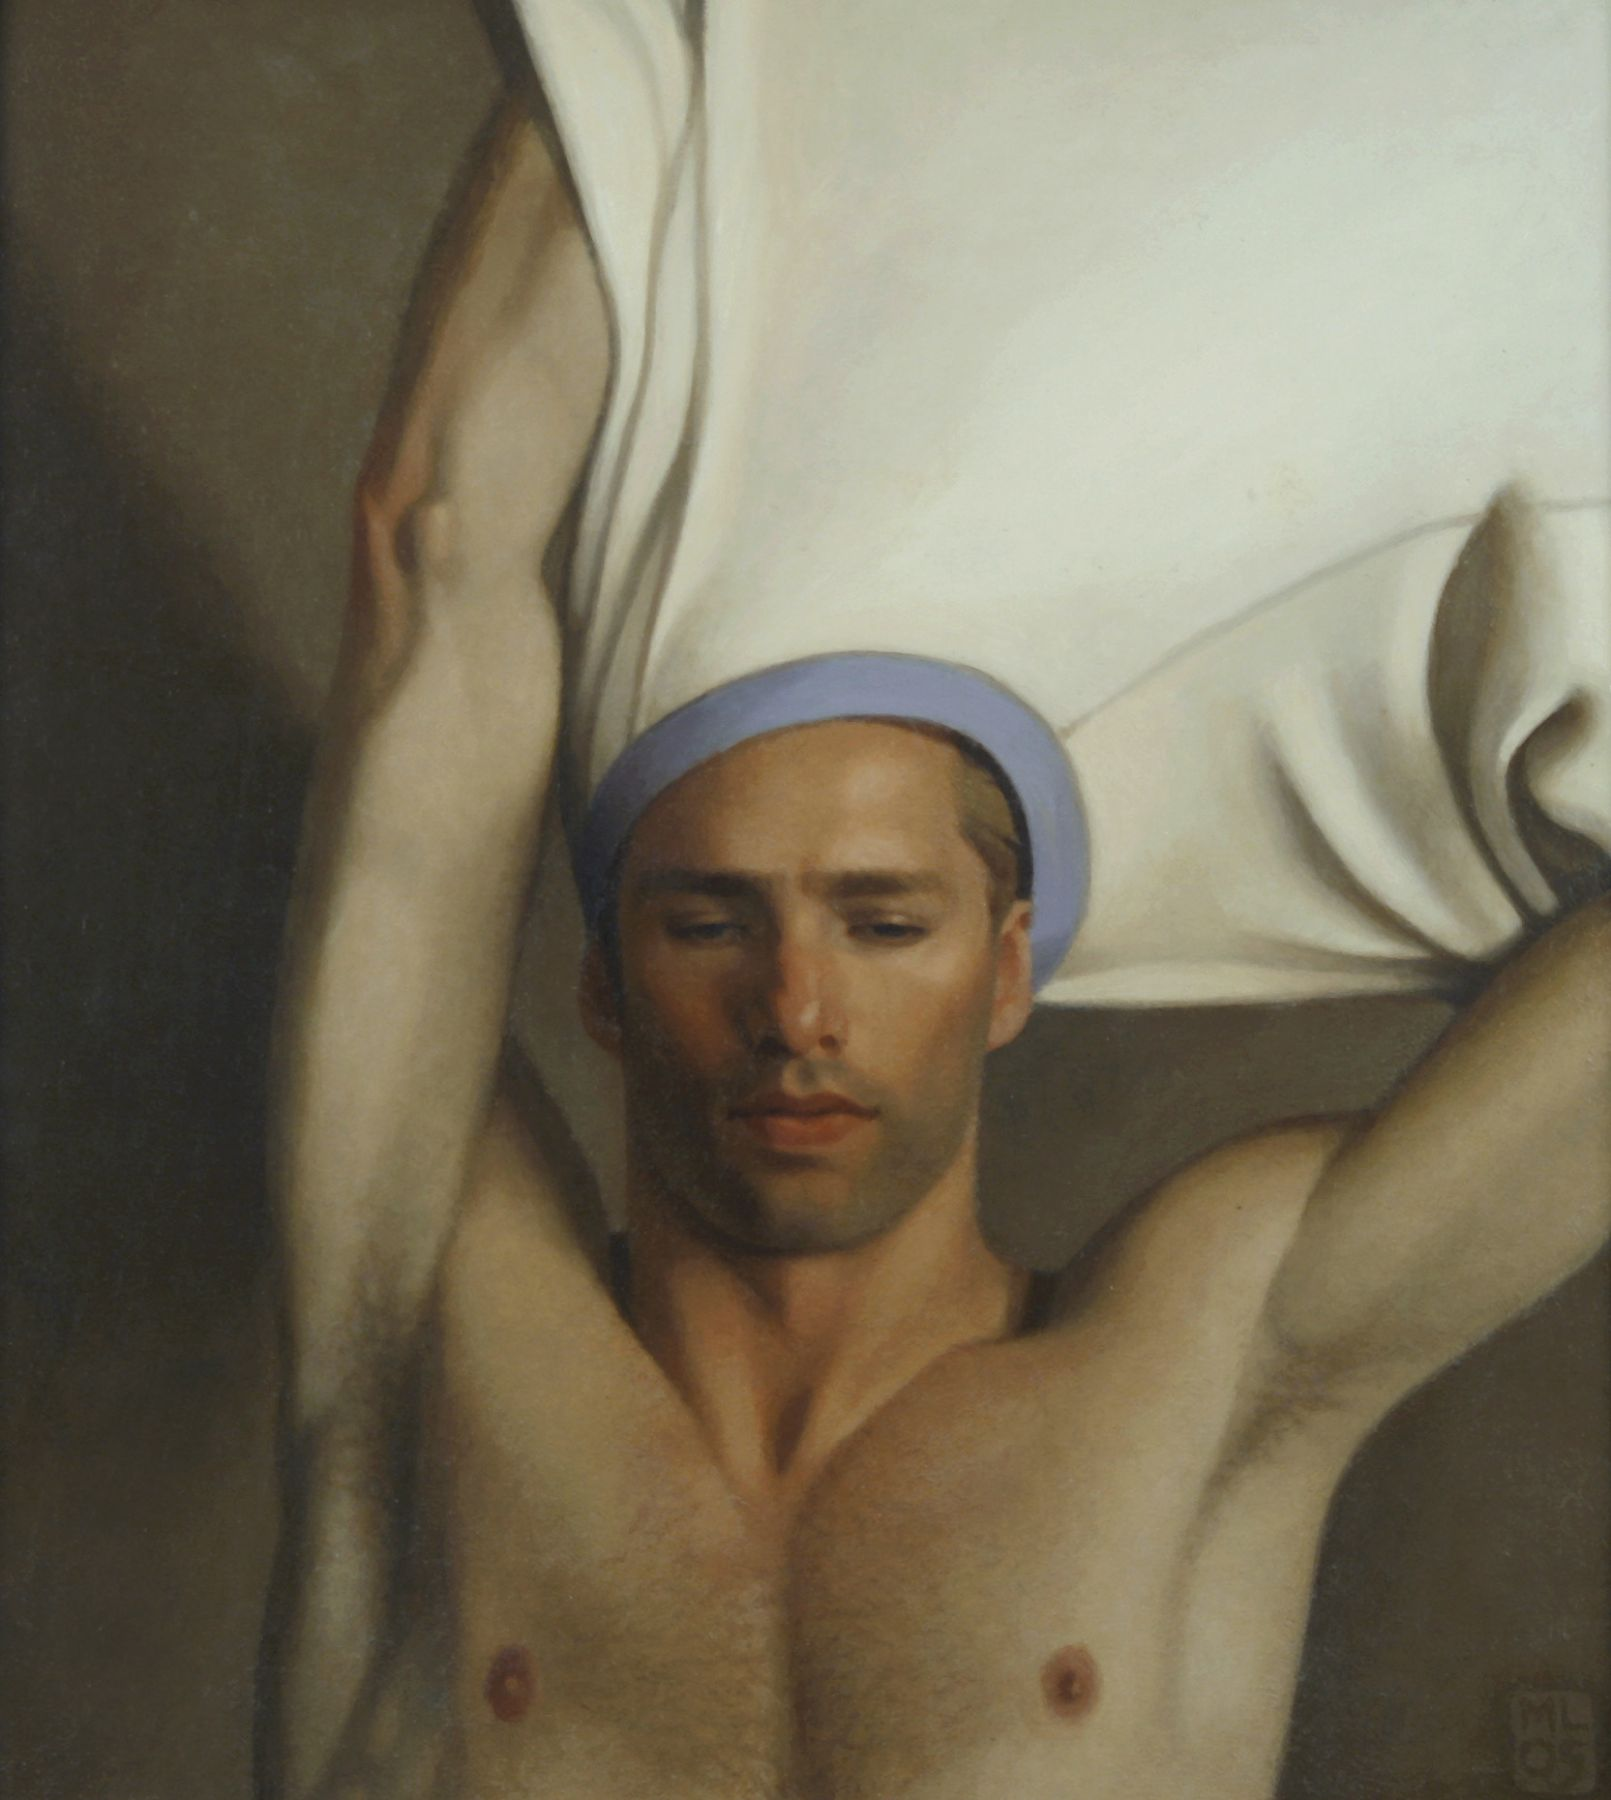 Michael Leonard, Taking Off, 2005, alkyd-oil on masonite, 18 1/2 x 16 1/2 inches